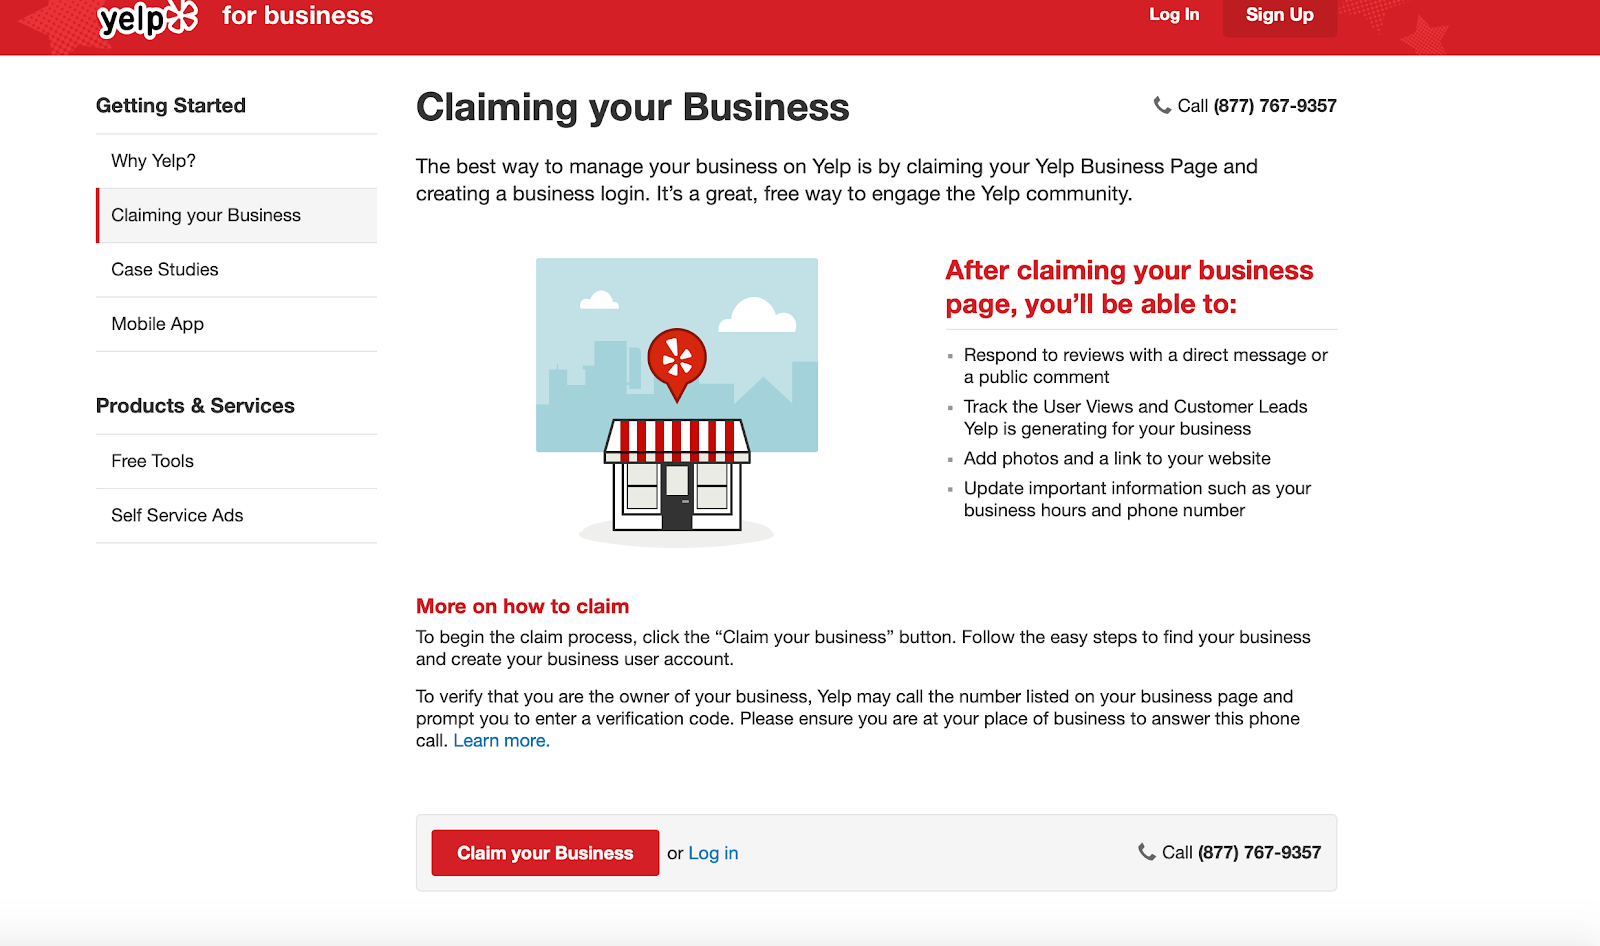 Claiming your business Yelp walkthrough